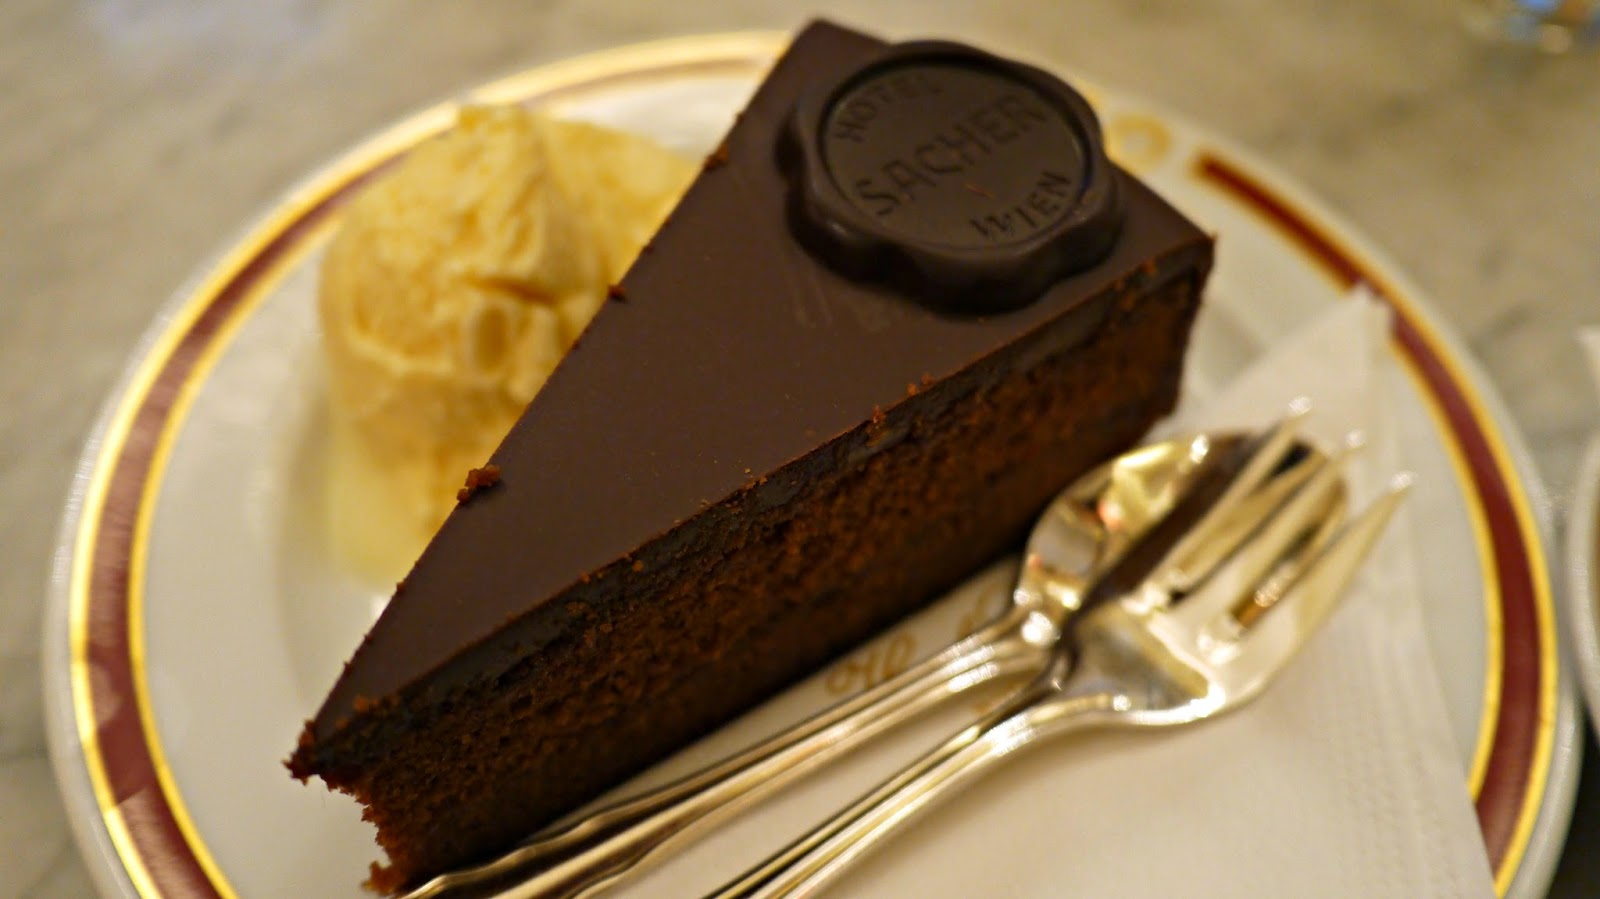 Sacher torte from Sacher cafe hotel in Vienna